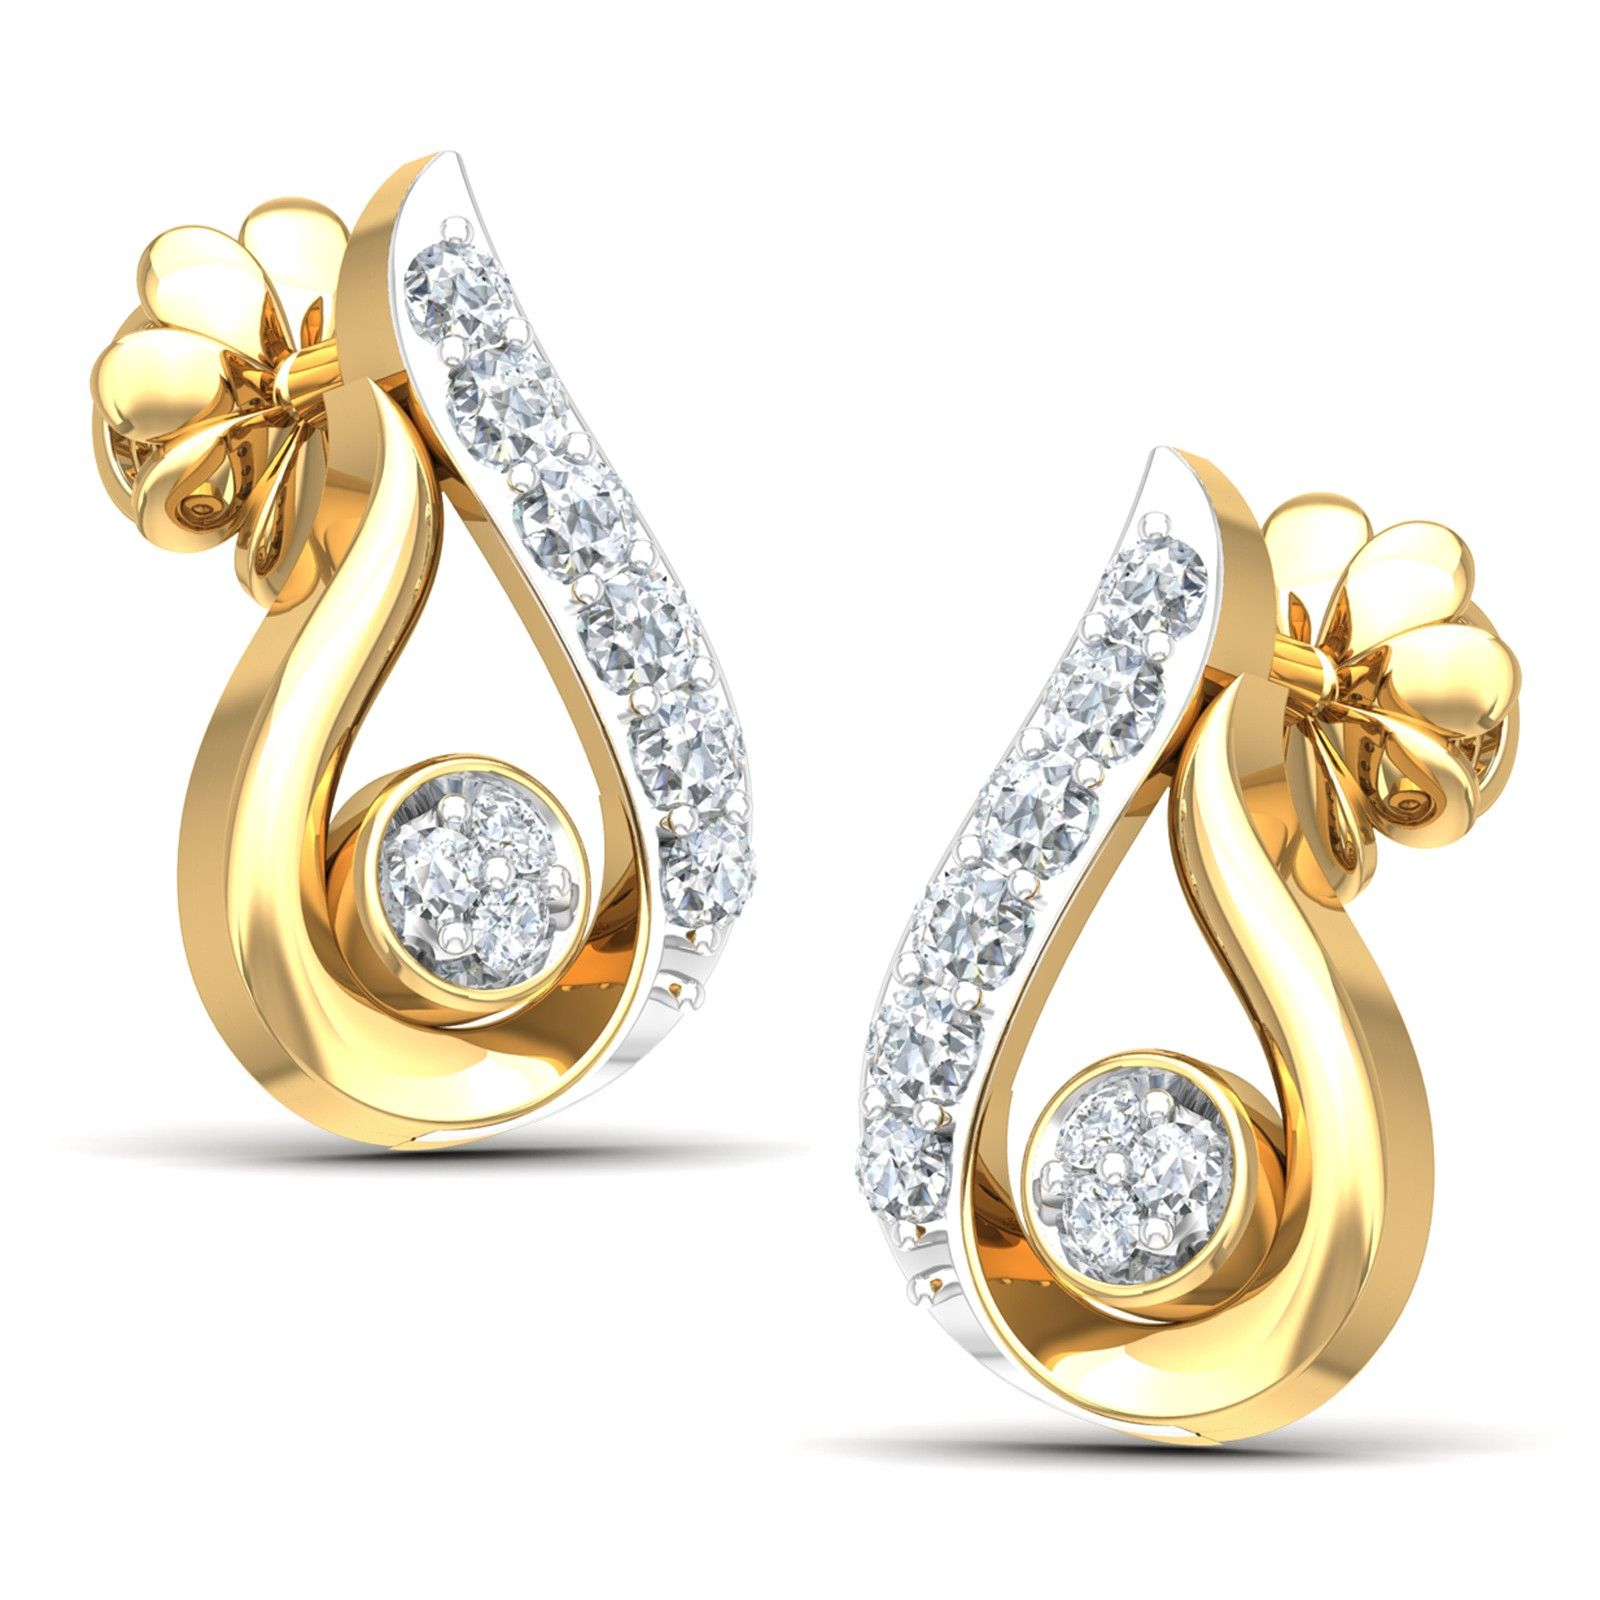 The Ectase Diamond Stud Earrings An enticing set of gold diamond